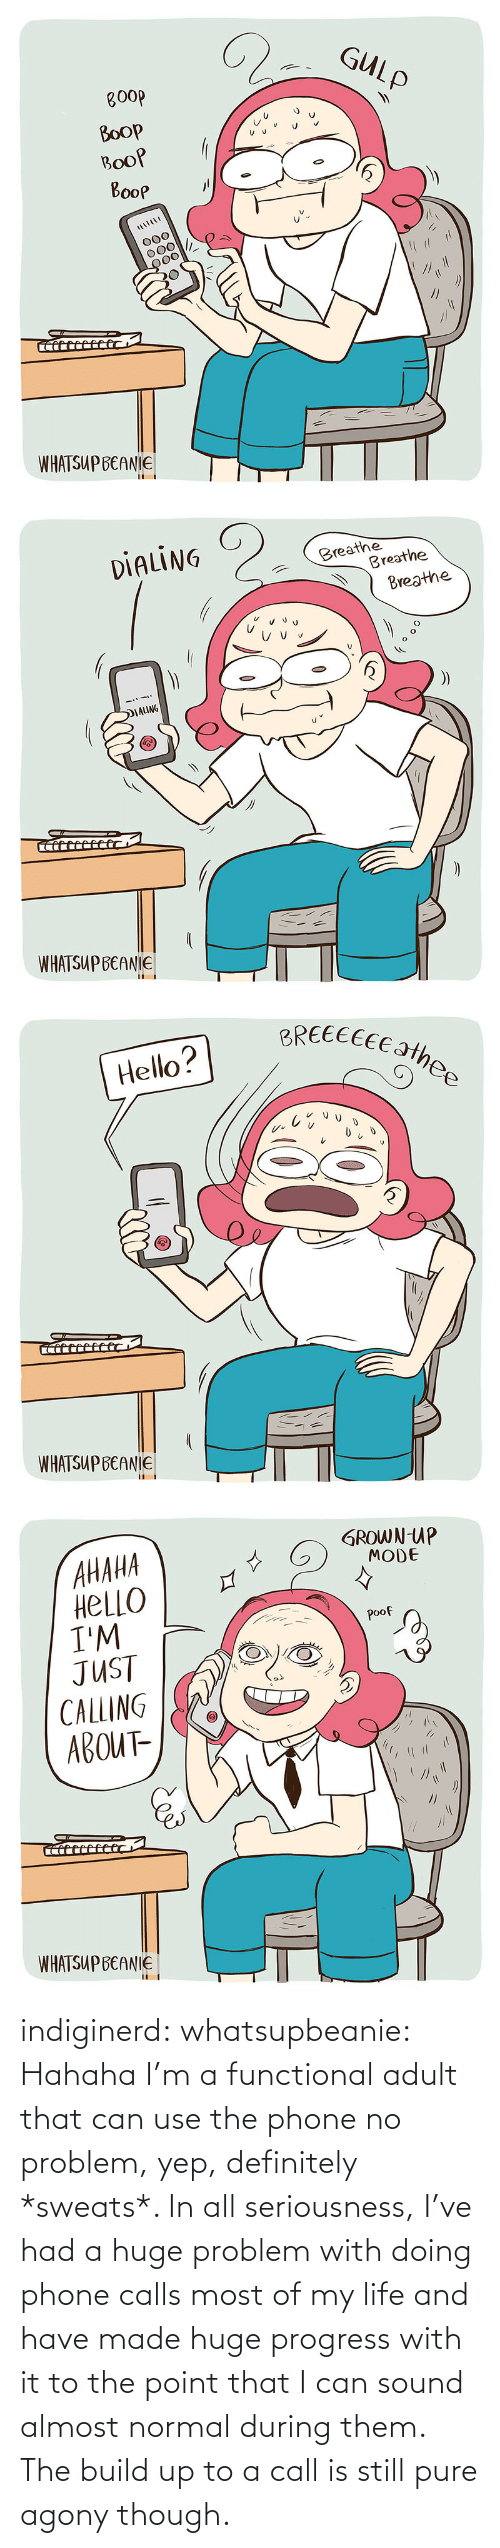 Definitely, Life, and Phone: indiginerd: whatsupbeanie: Hahaha I'm a functional adult that can use the phone no problem, yep, definitely *sweats*. In all seriousness, I've had a huge problem with doing phone calls most of my life and have made huge progress with it to the point that I can sound almost normal during them. The build up to a call is still pure agony though.